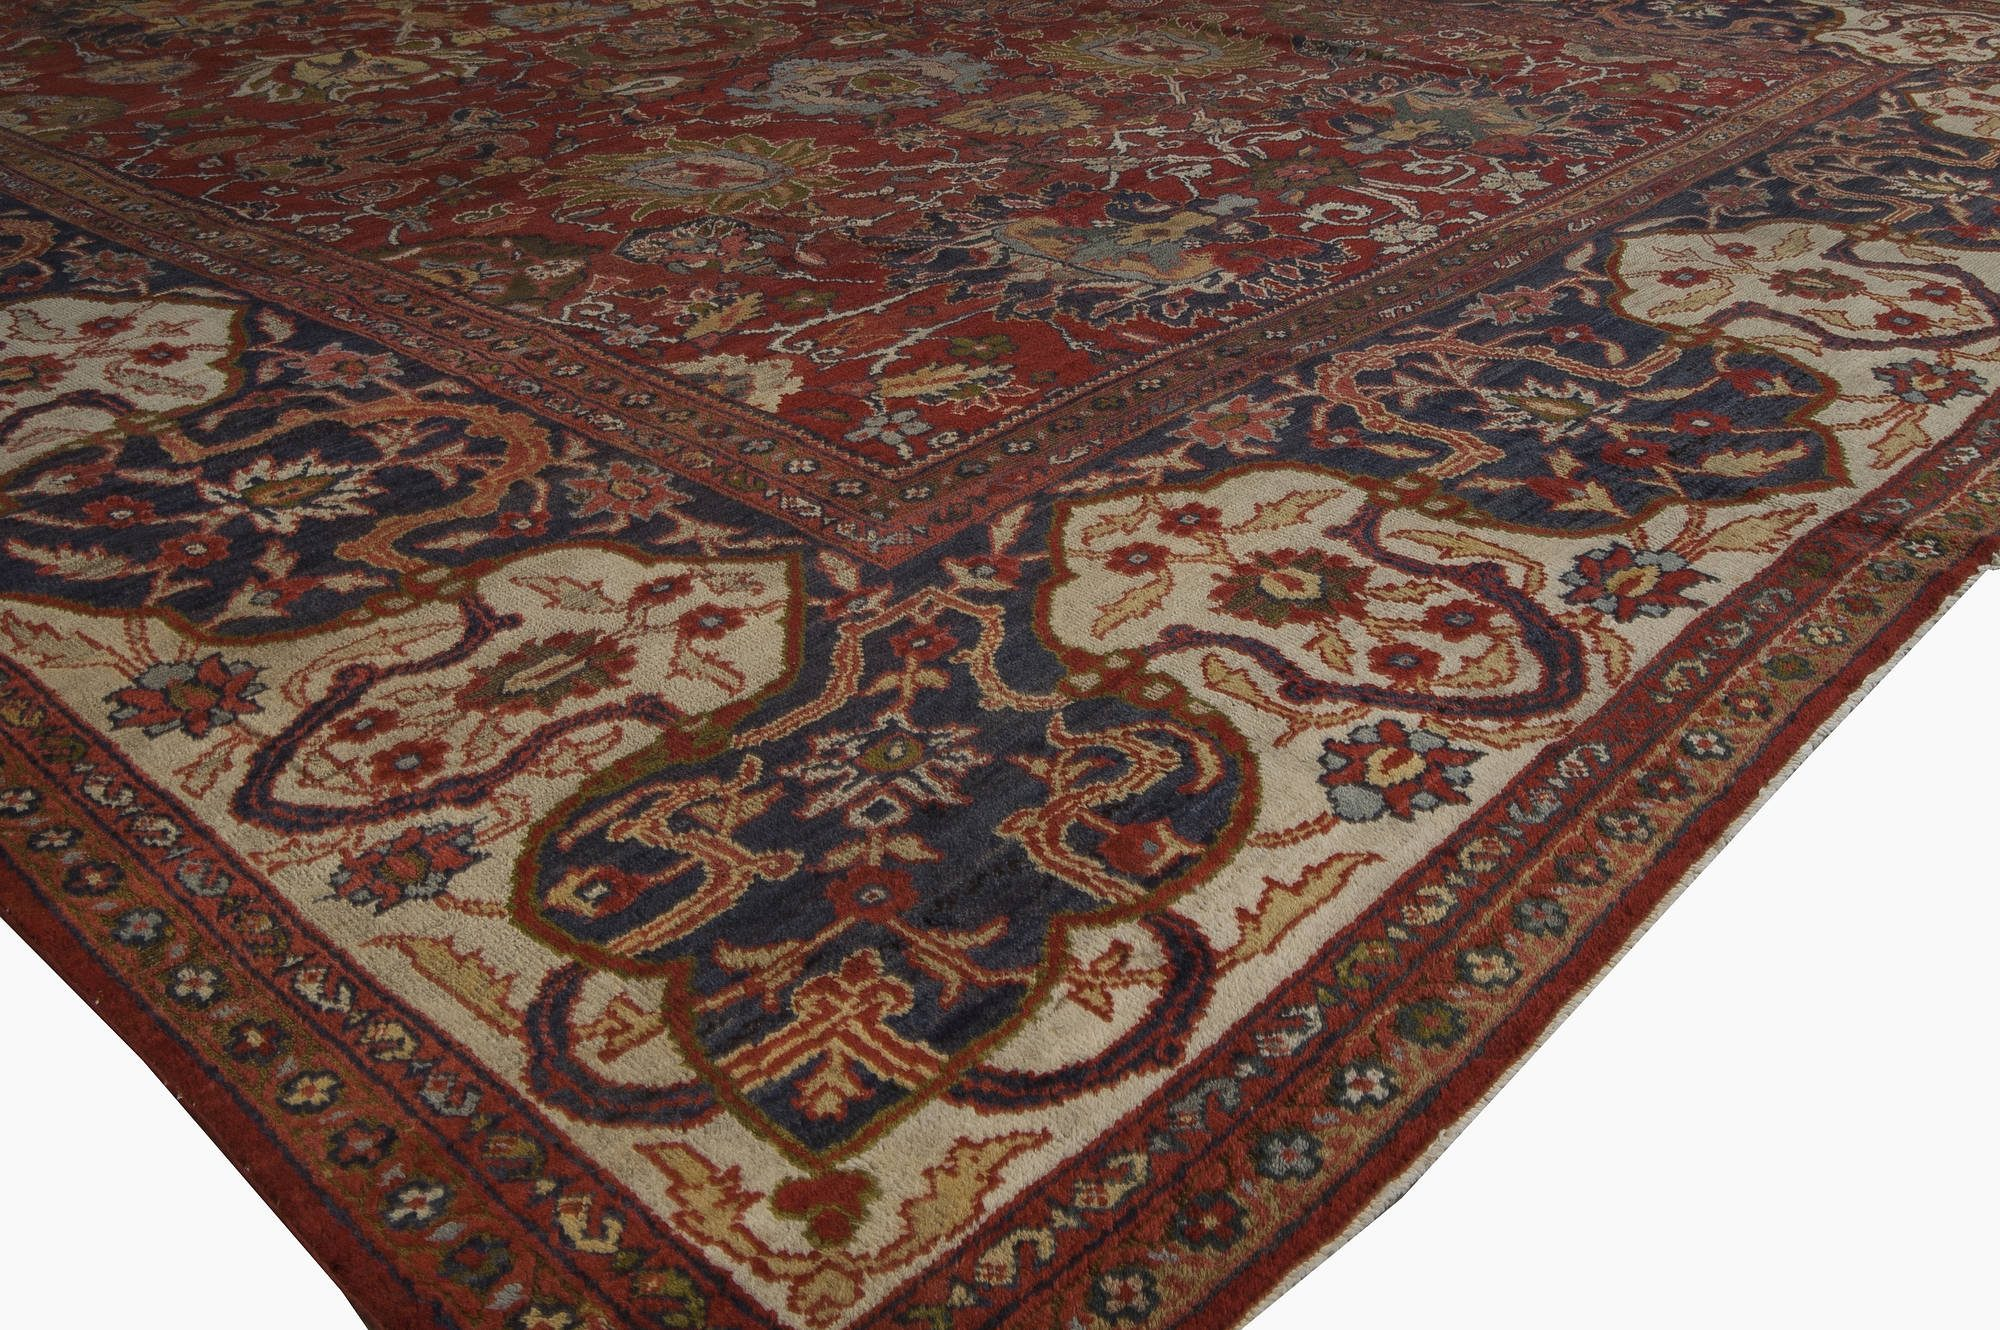 19th Century Persian Sultanabad Red Botanical Handmade Carpet BB6711